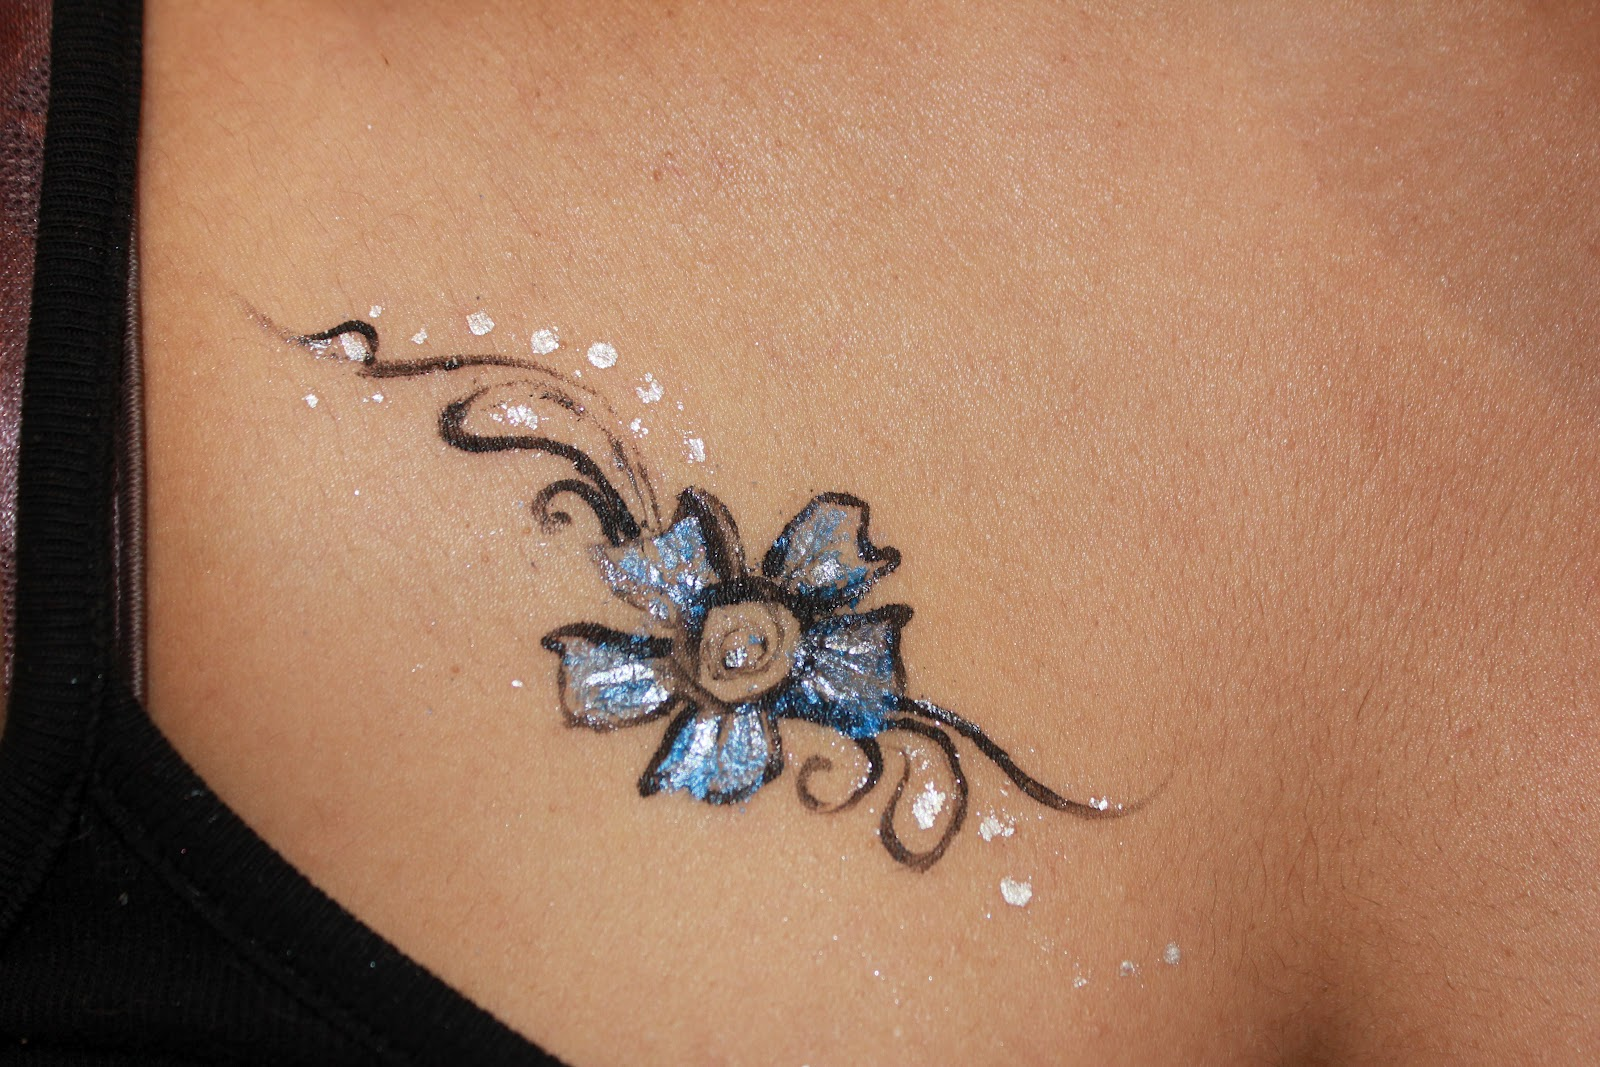 Metallic silver ink tattoos the image for Permanent metallic ink tattoos